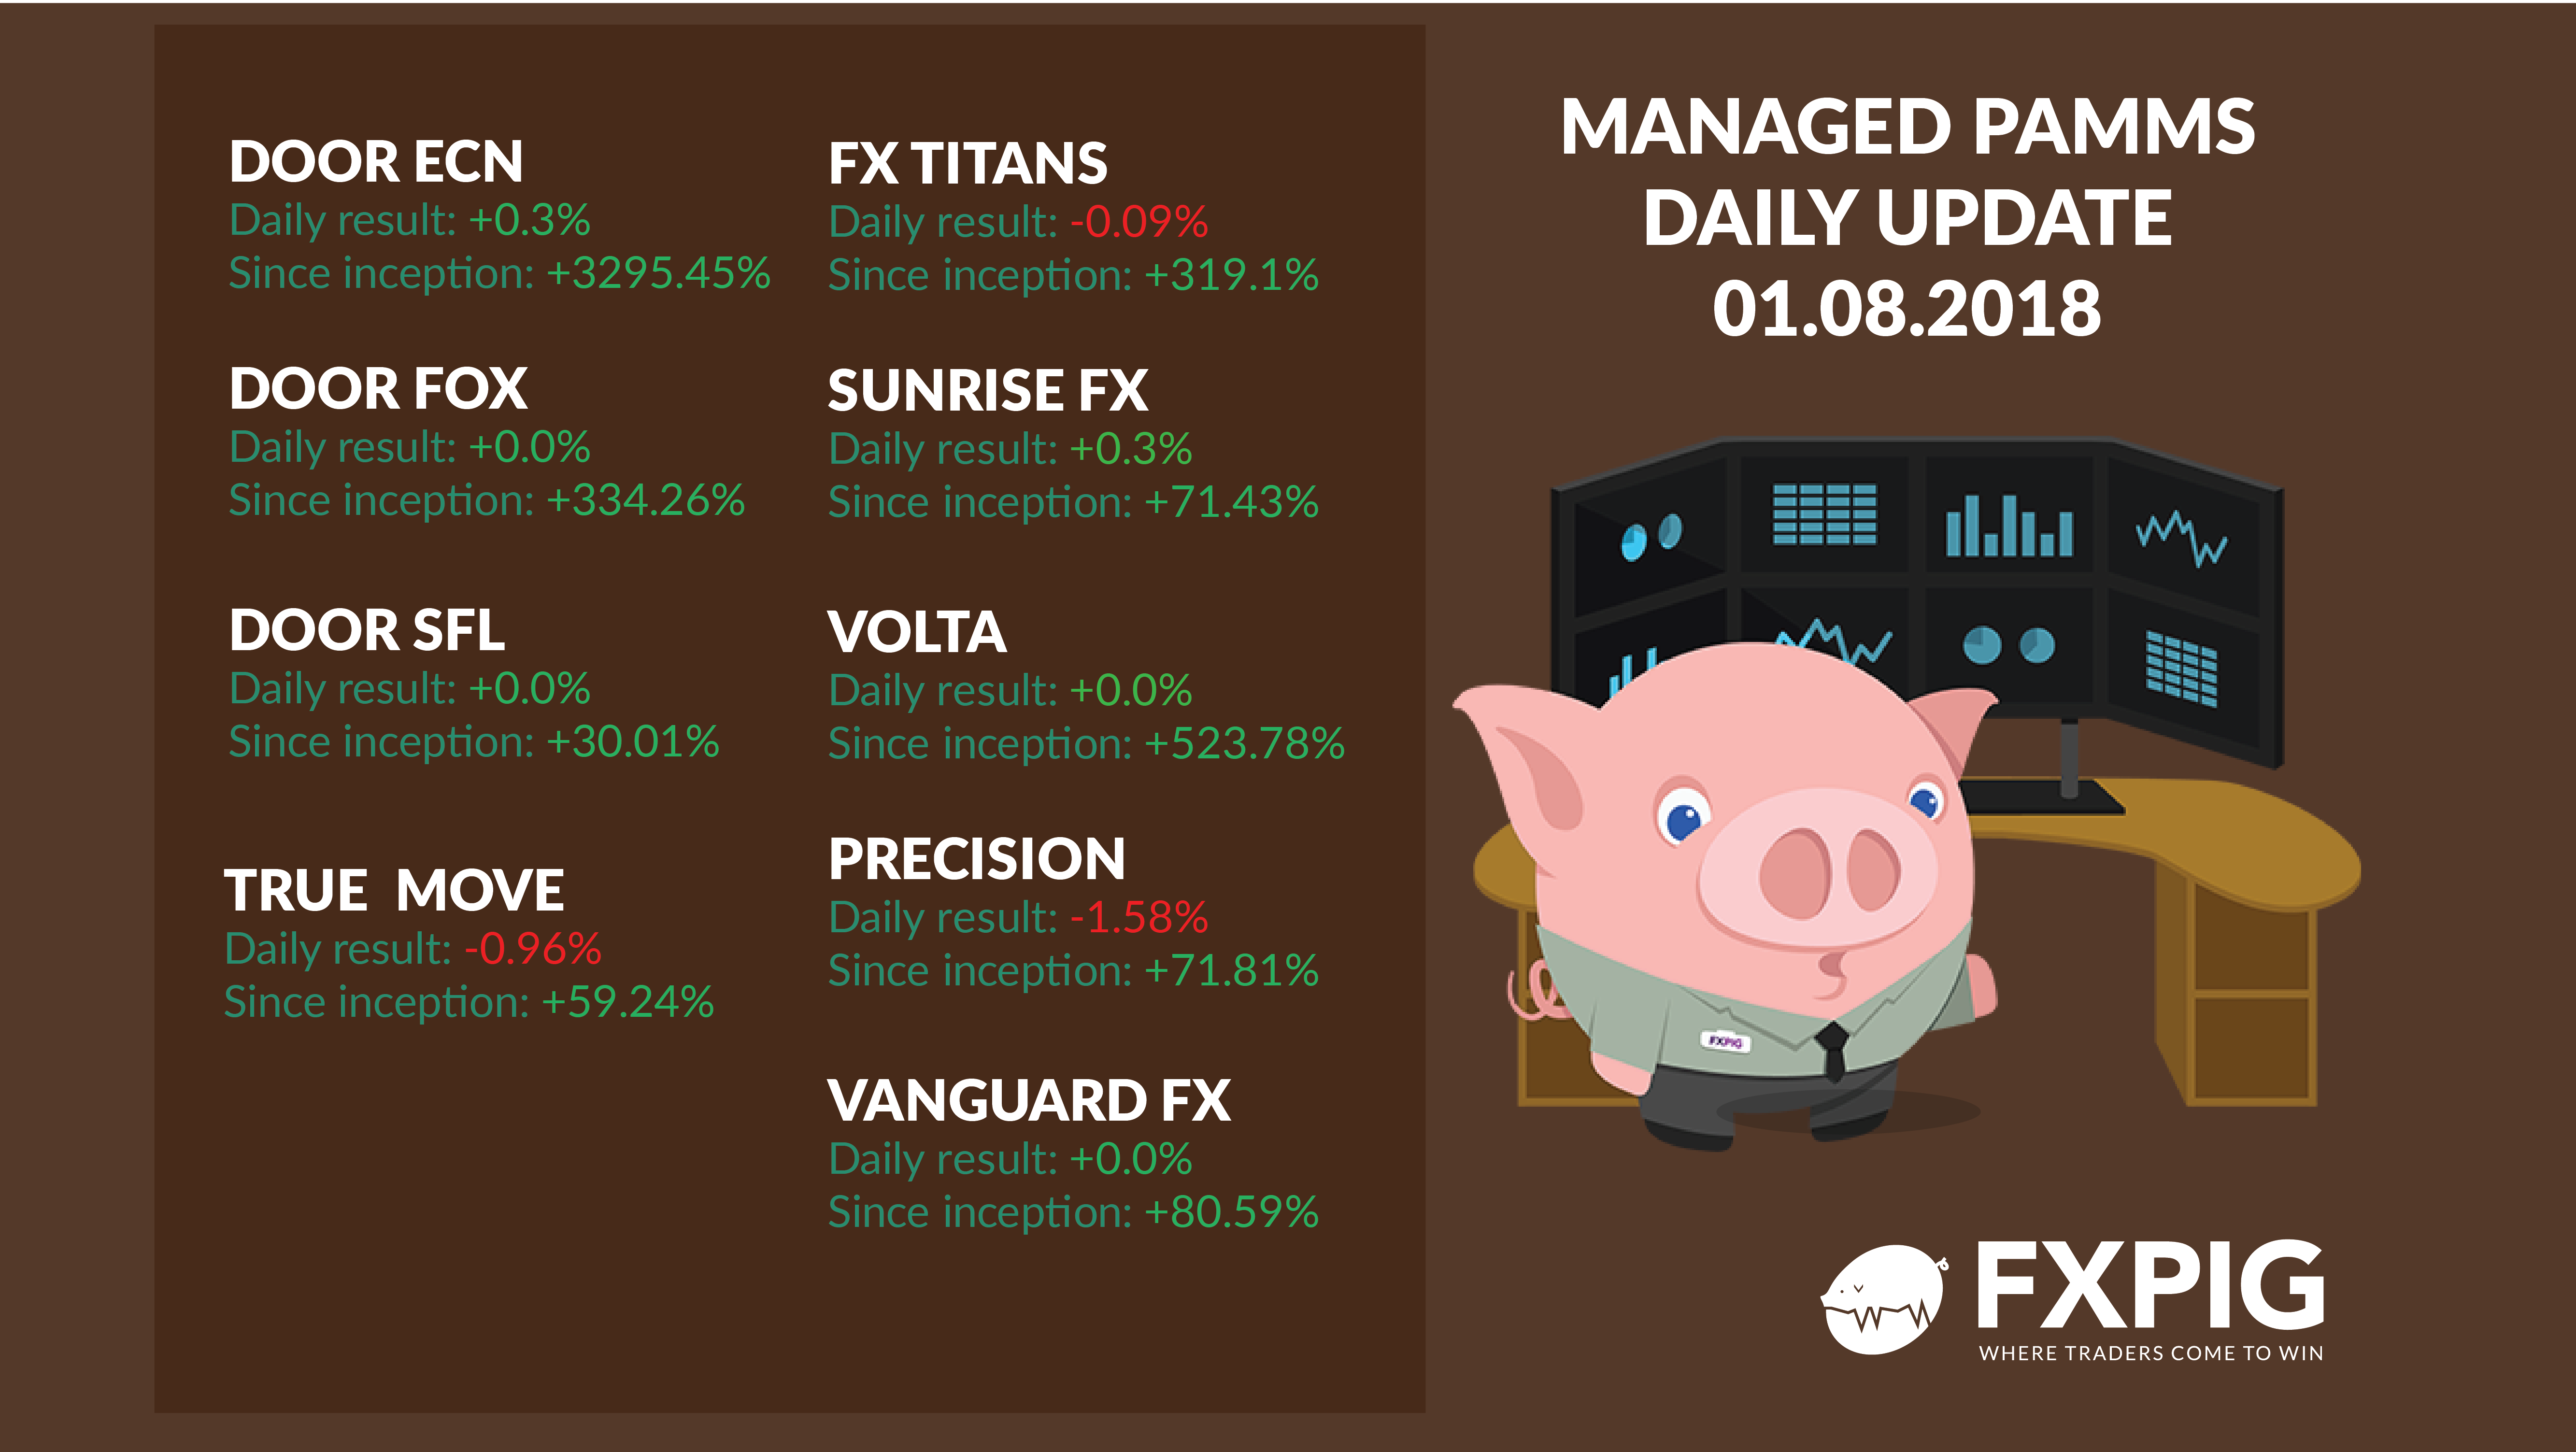 FOREX_managed-daily-accounts0108_FXPIG